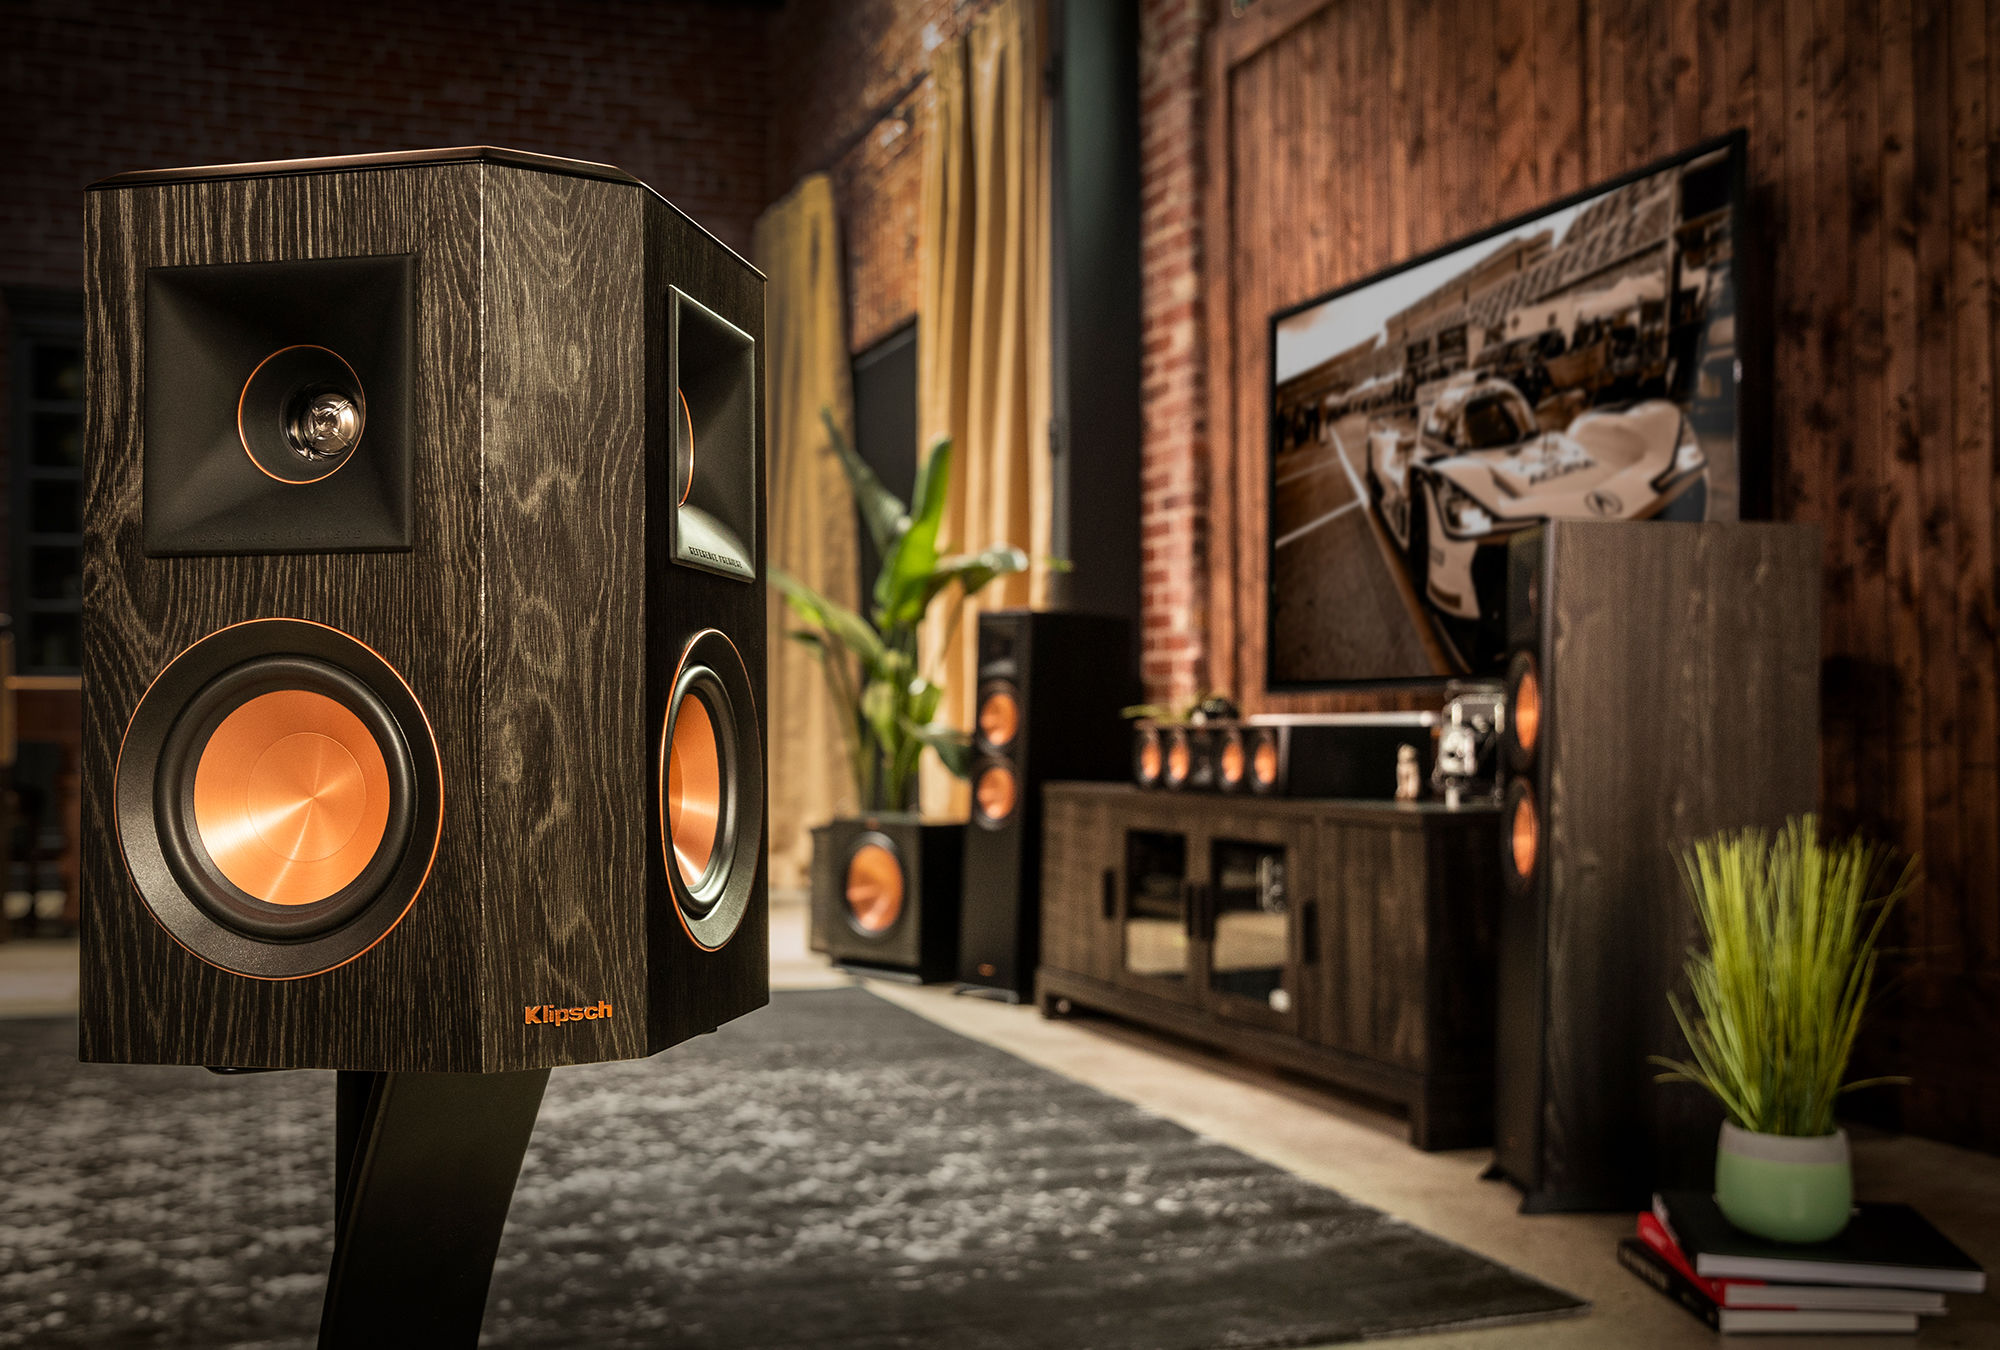 Klipsch RP-502S surround sound speaker as part of a full system